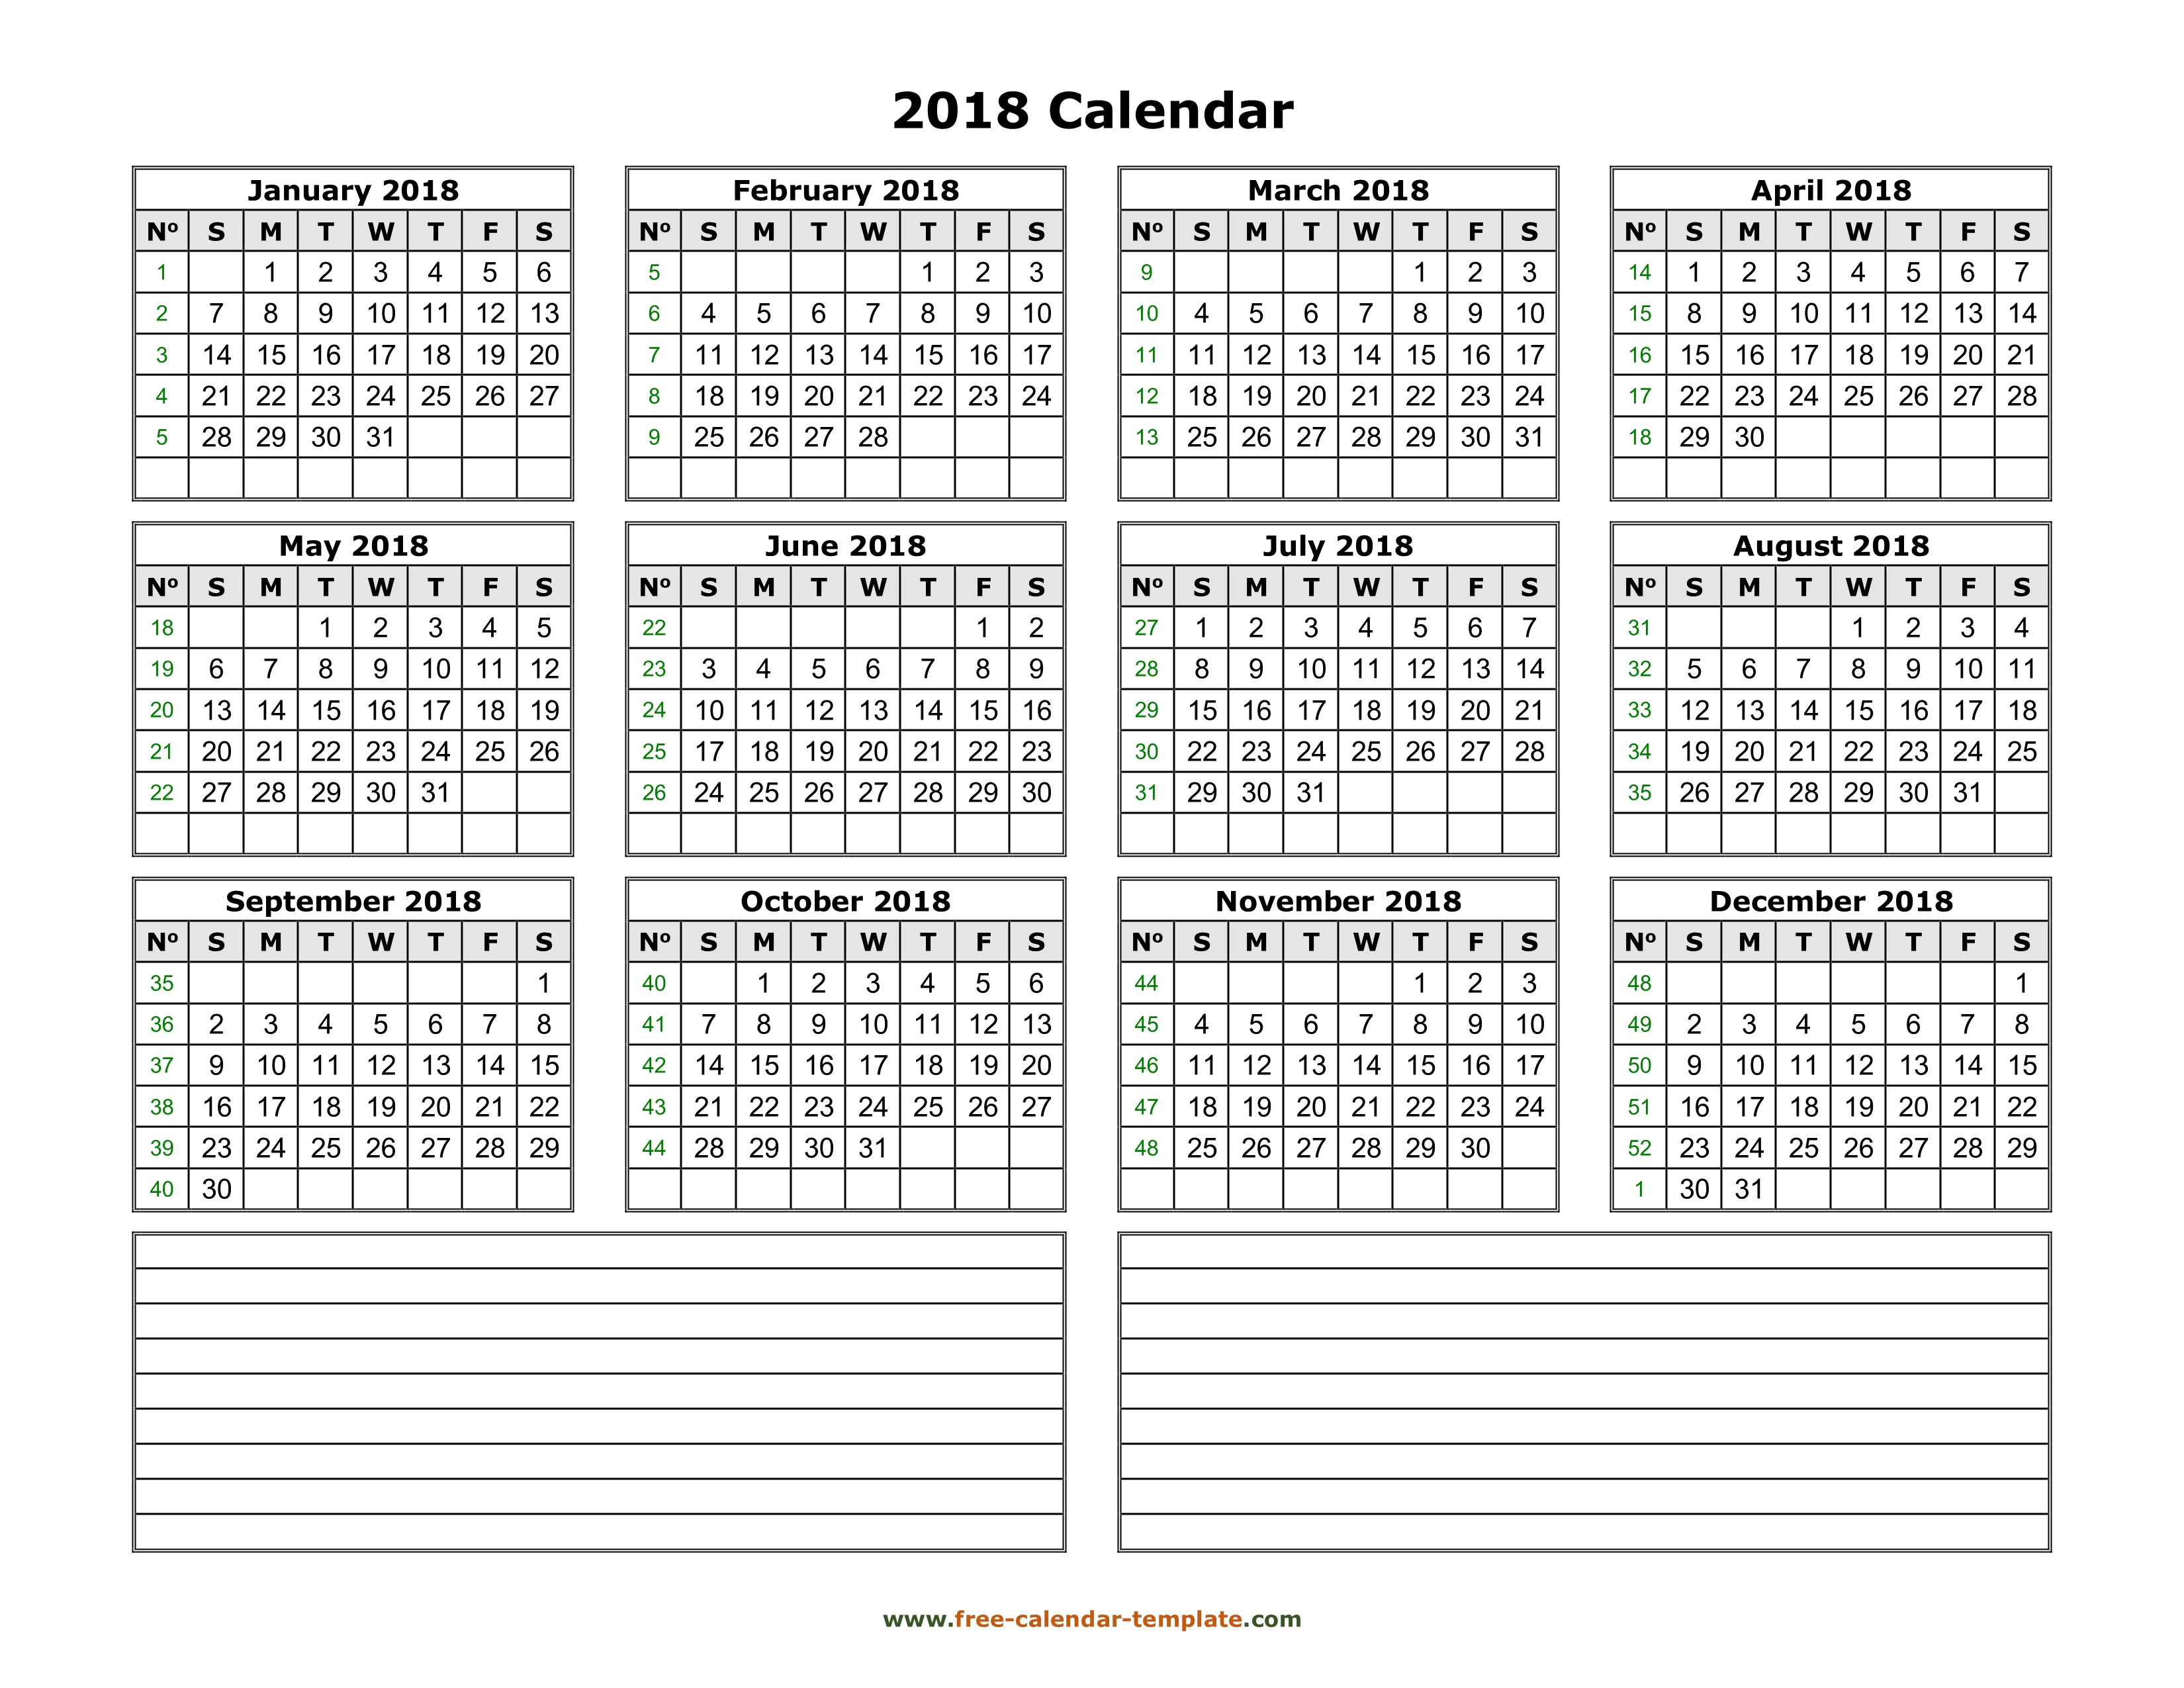 Yearly 2018 calendar printable with space for notes | Free-calendar ...